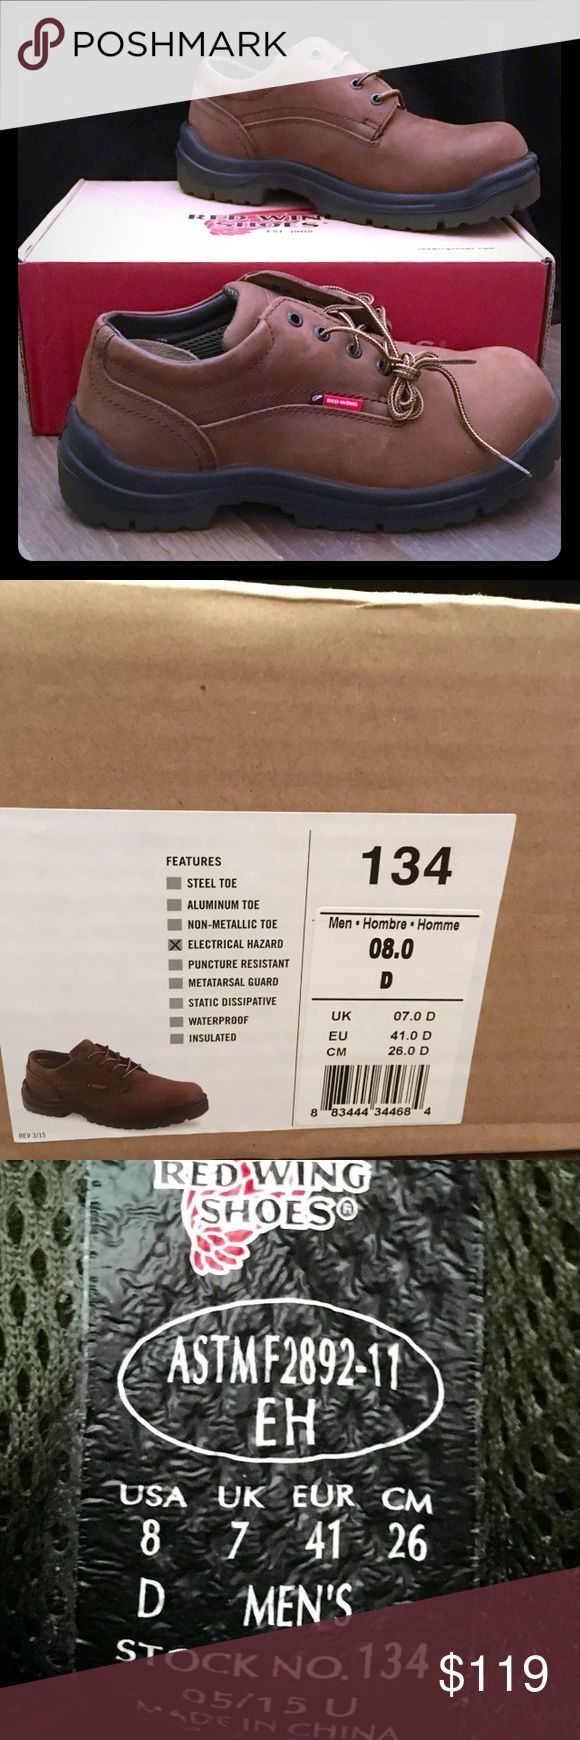 Red Wing Shoes Oxford Size 8 #4479 brown Men's Red Wing Shoes Oxford, Size 8, #4479 in brown. New in box! 🎉 FINAL PRICE 🎉 Red Wing Shoes Shoes Oxfords & Derbys